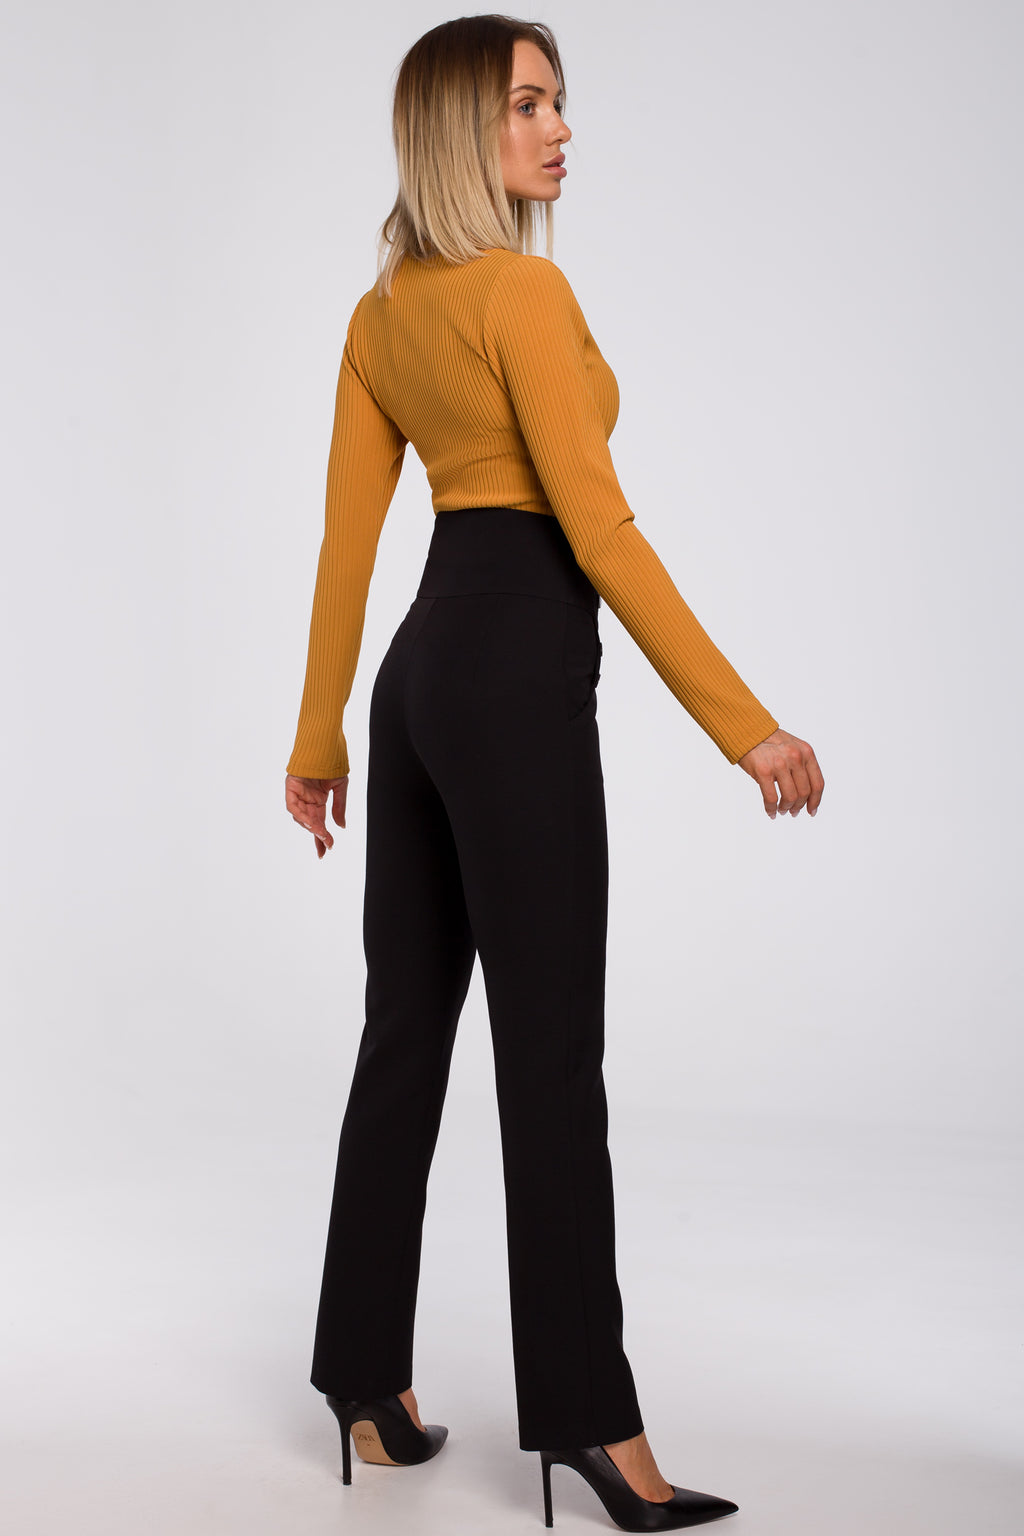 High Waist Black Trousers With Decorative Side Press Studs - So Chic Boutique